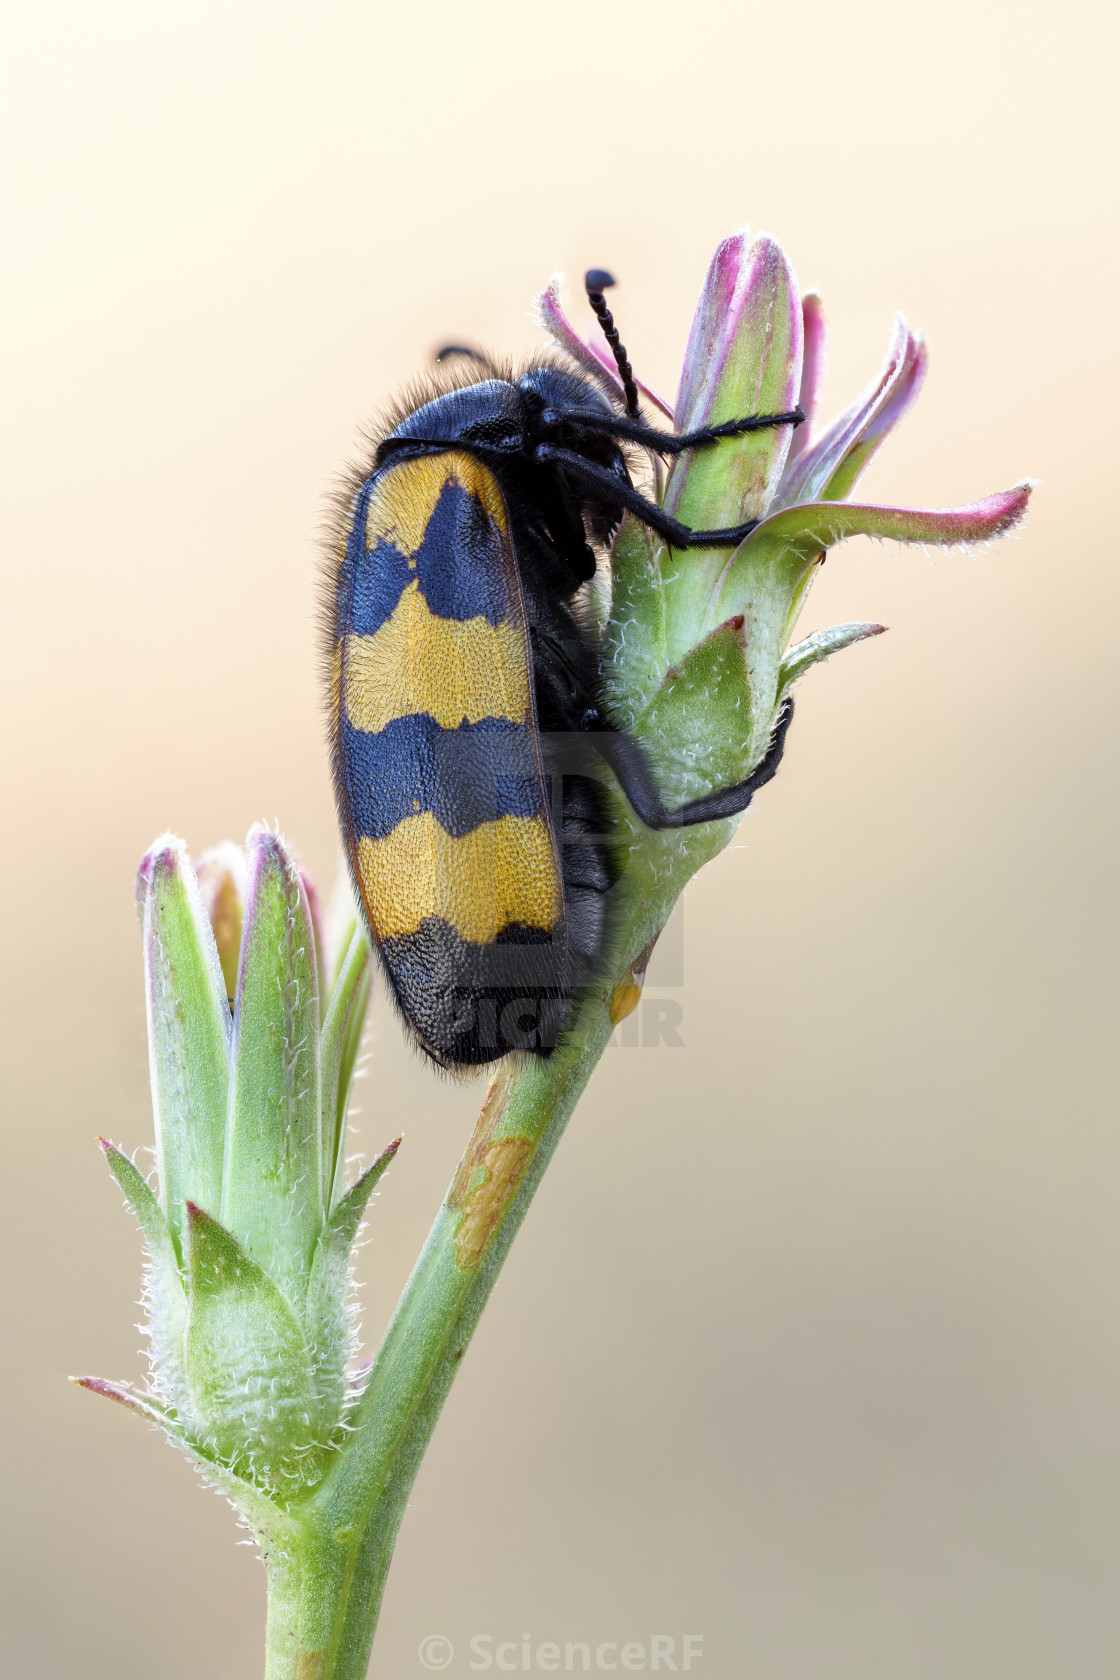 Blister beetle - License, download or print for £39 00